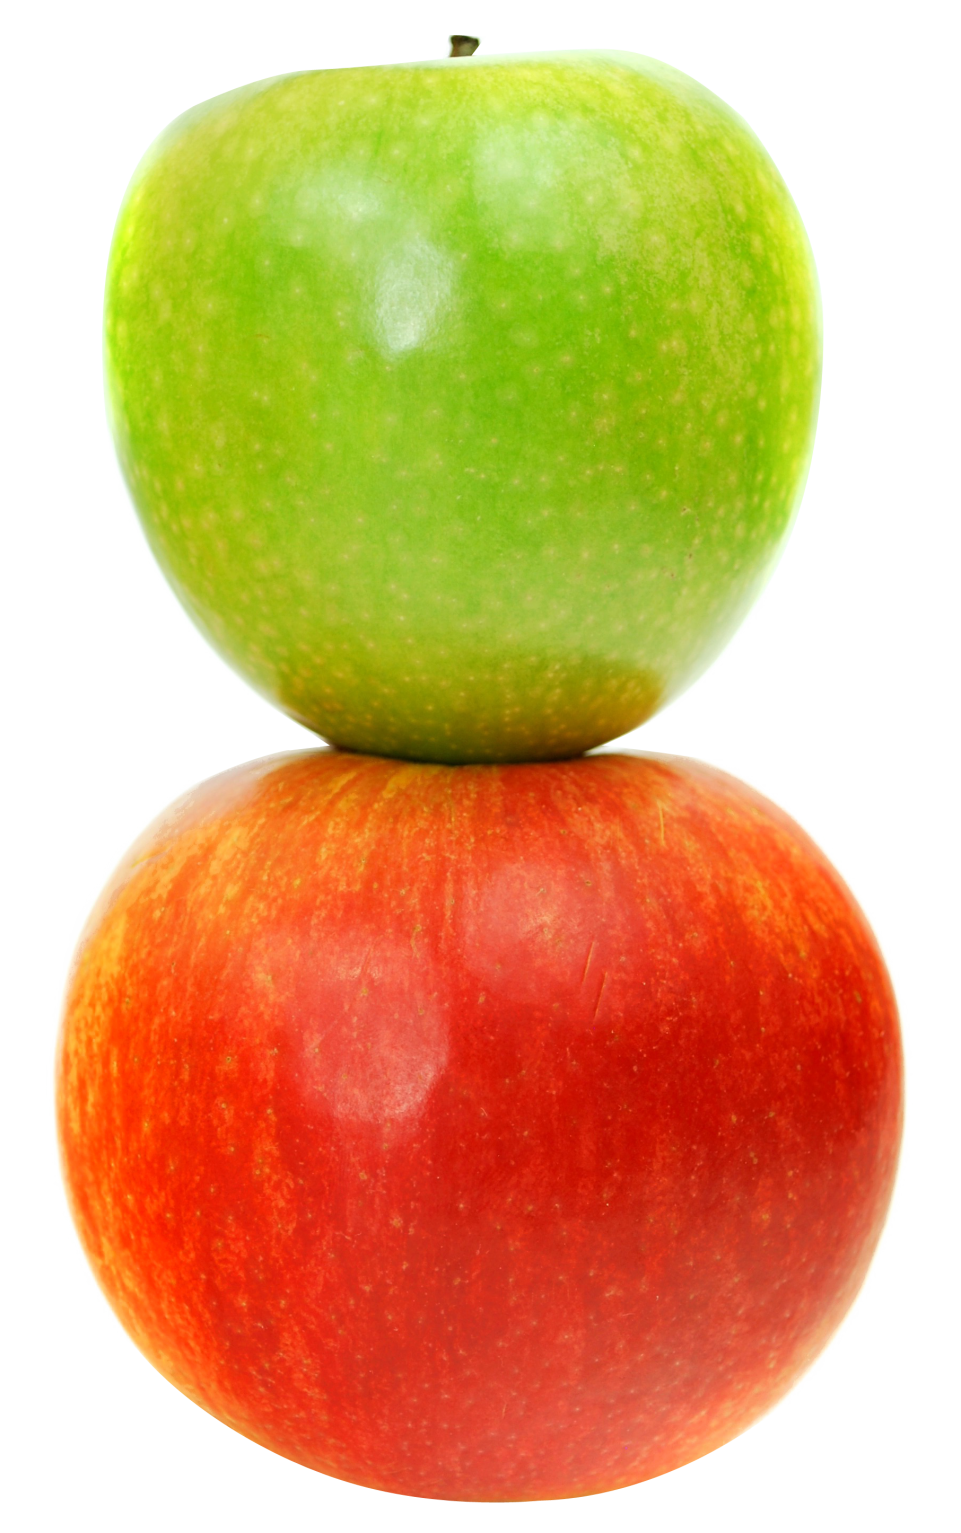 Double  Apples PNG Image